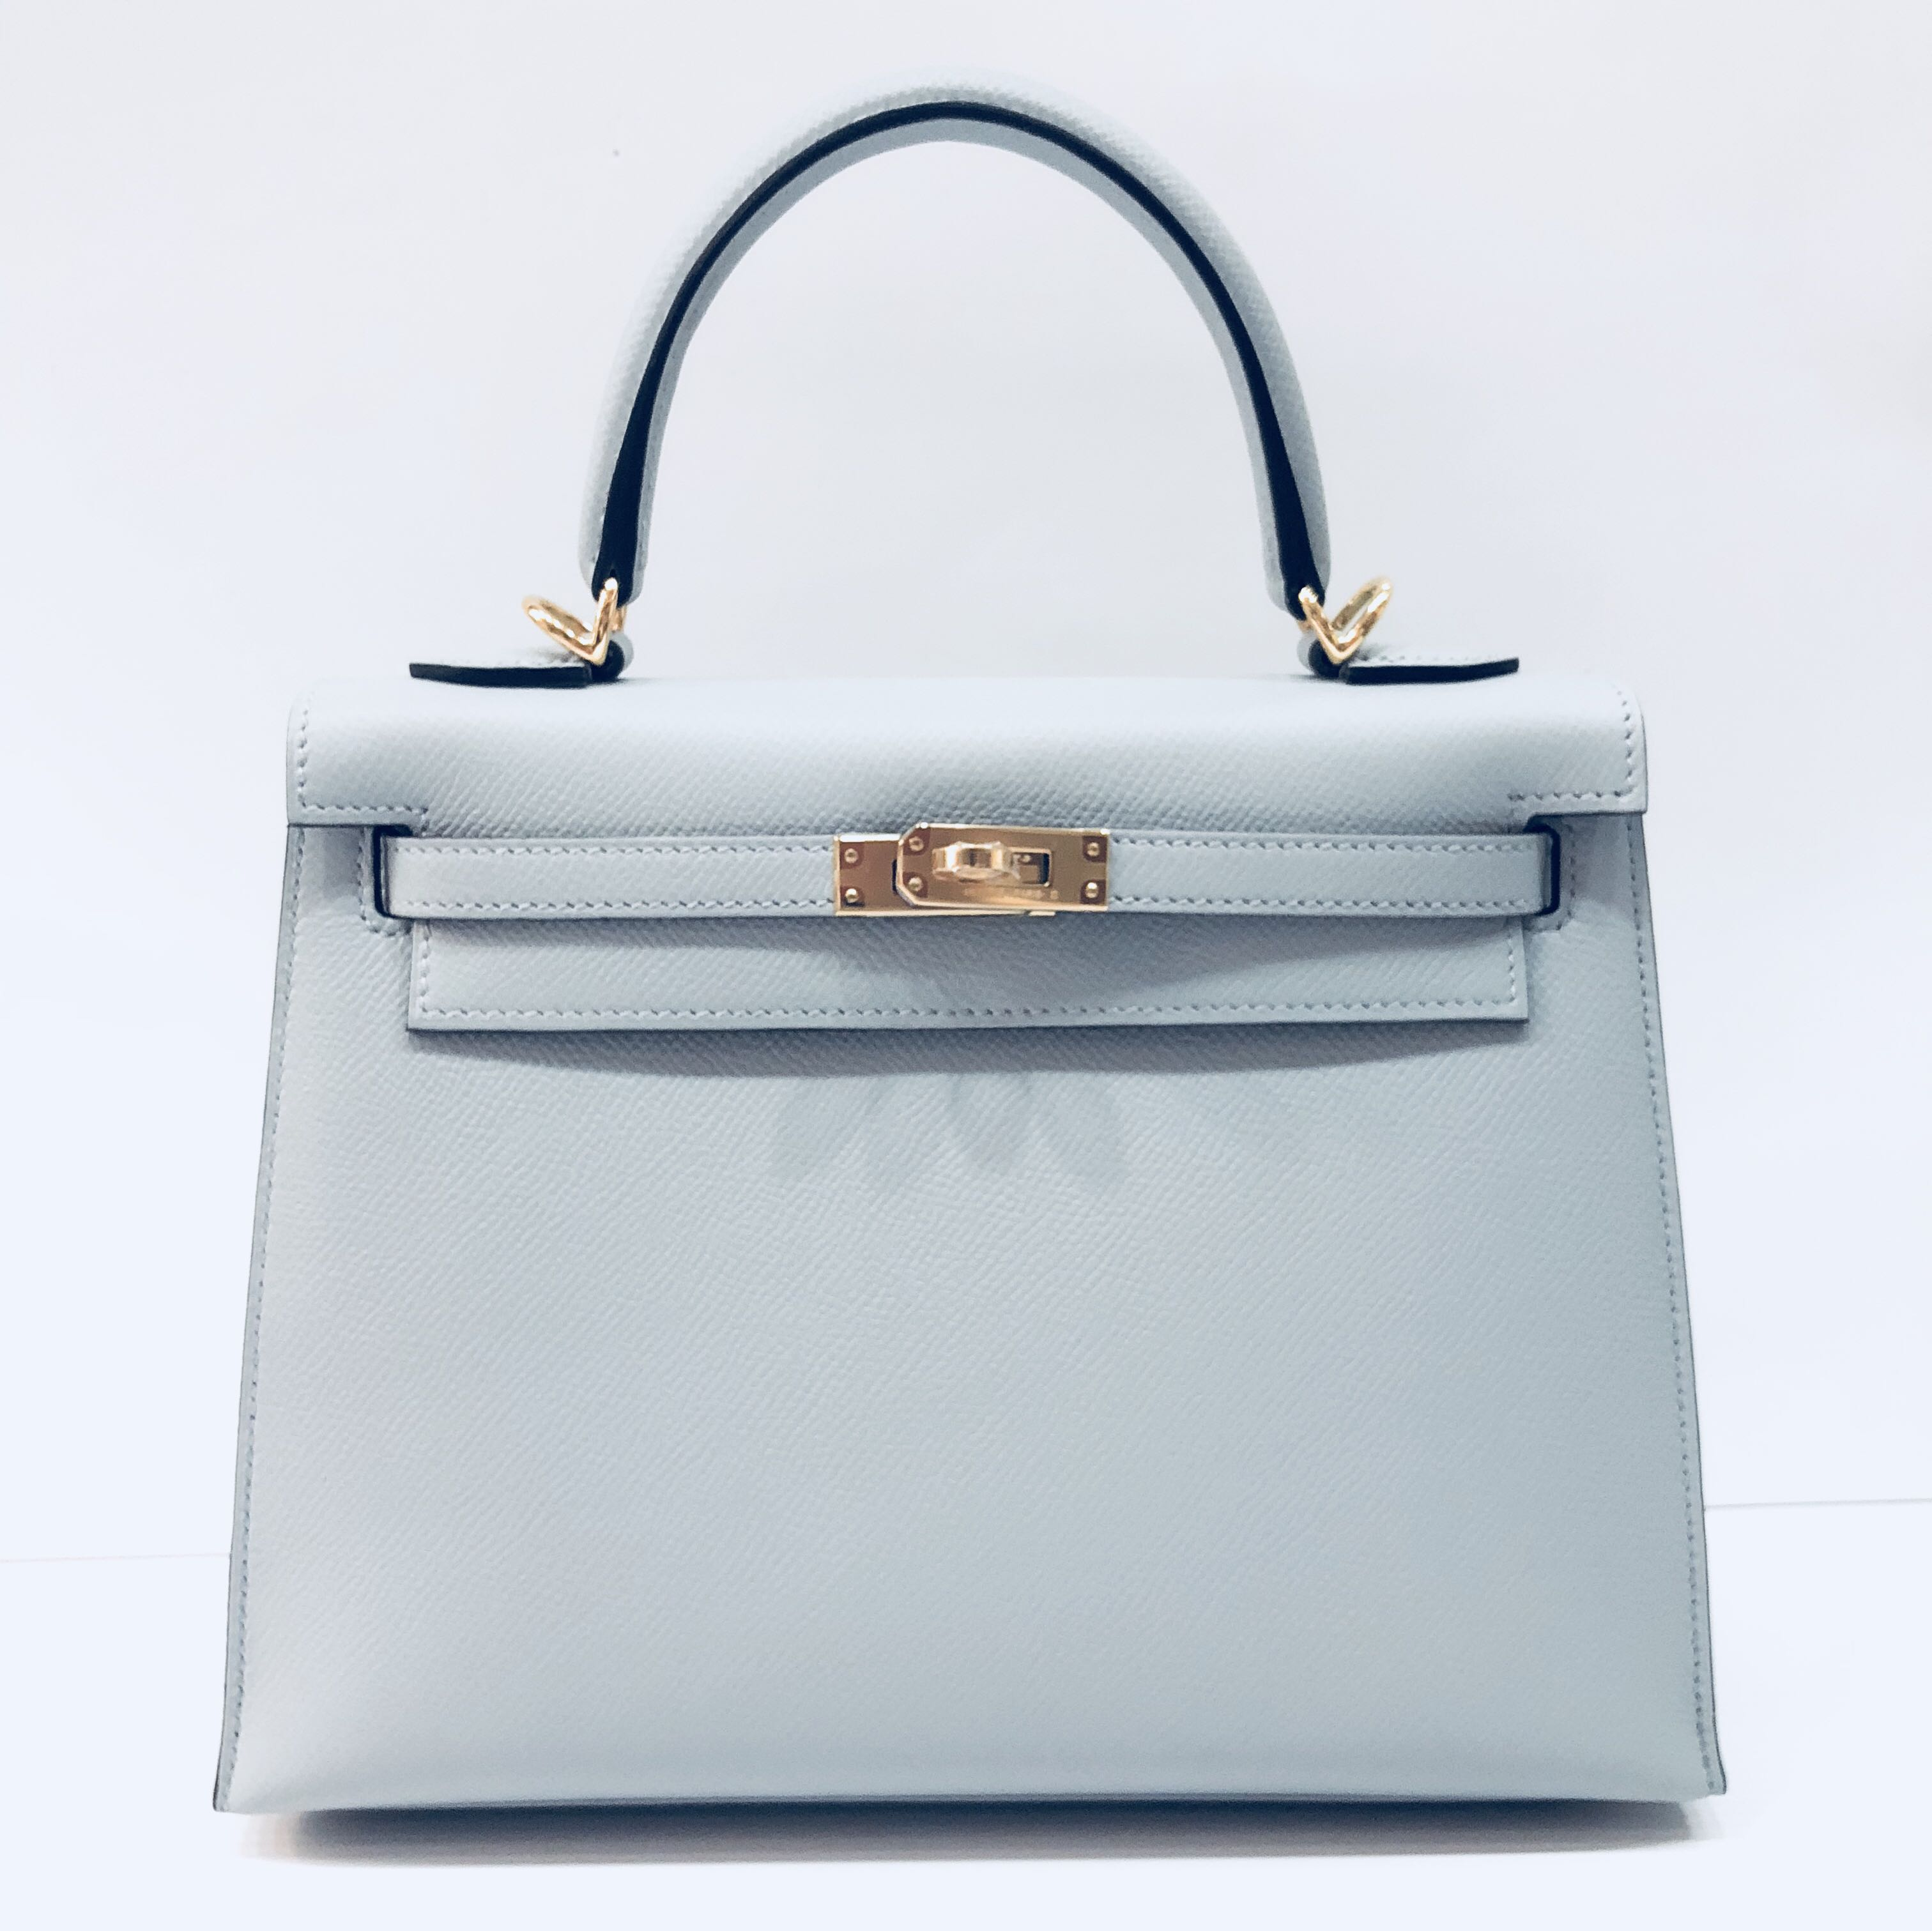 fe34c66cda8e Hermes - Blue Glacier Kelly 25 Sellier in Veau Epsom with GHW ...